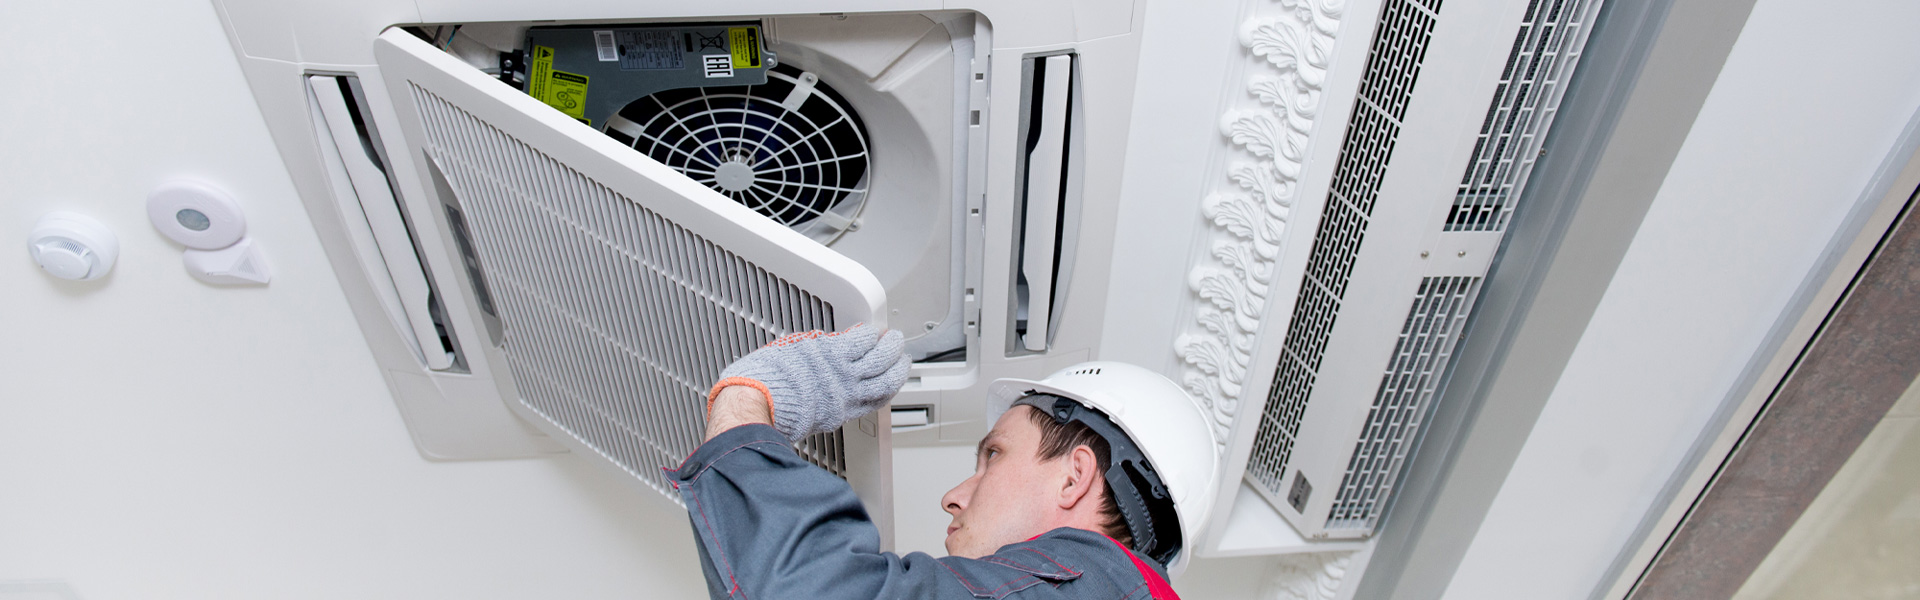 Engineer Completing Air Conditioning Maintenance & Servicing